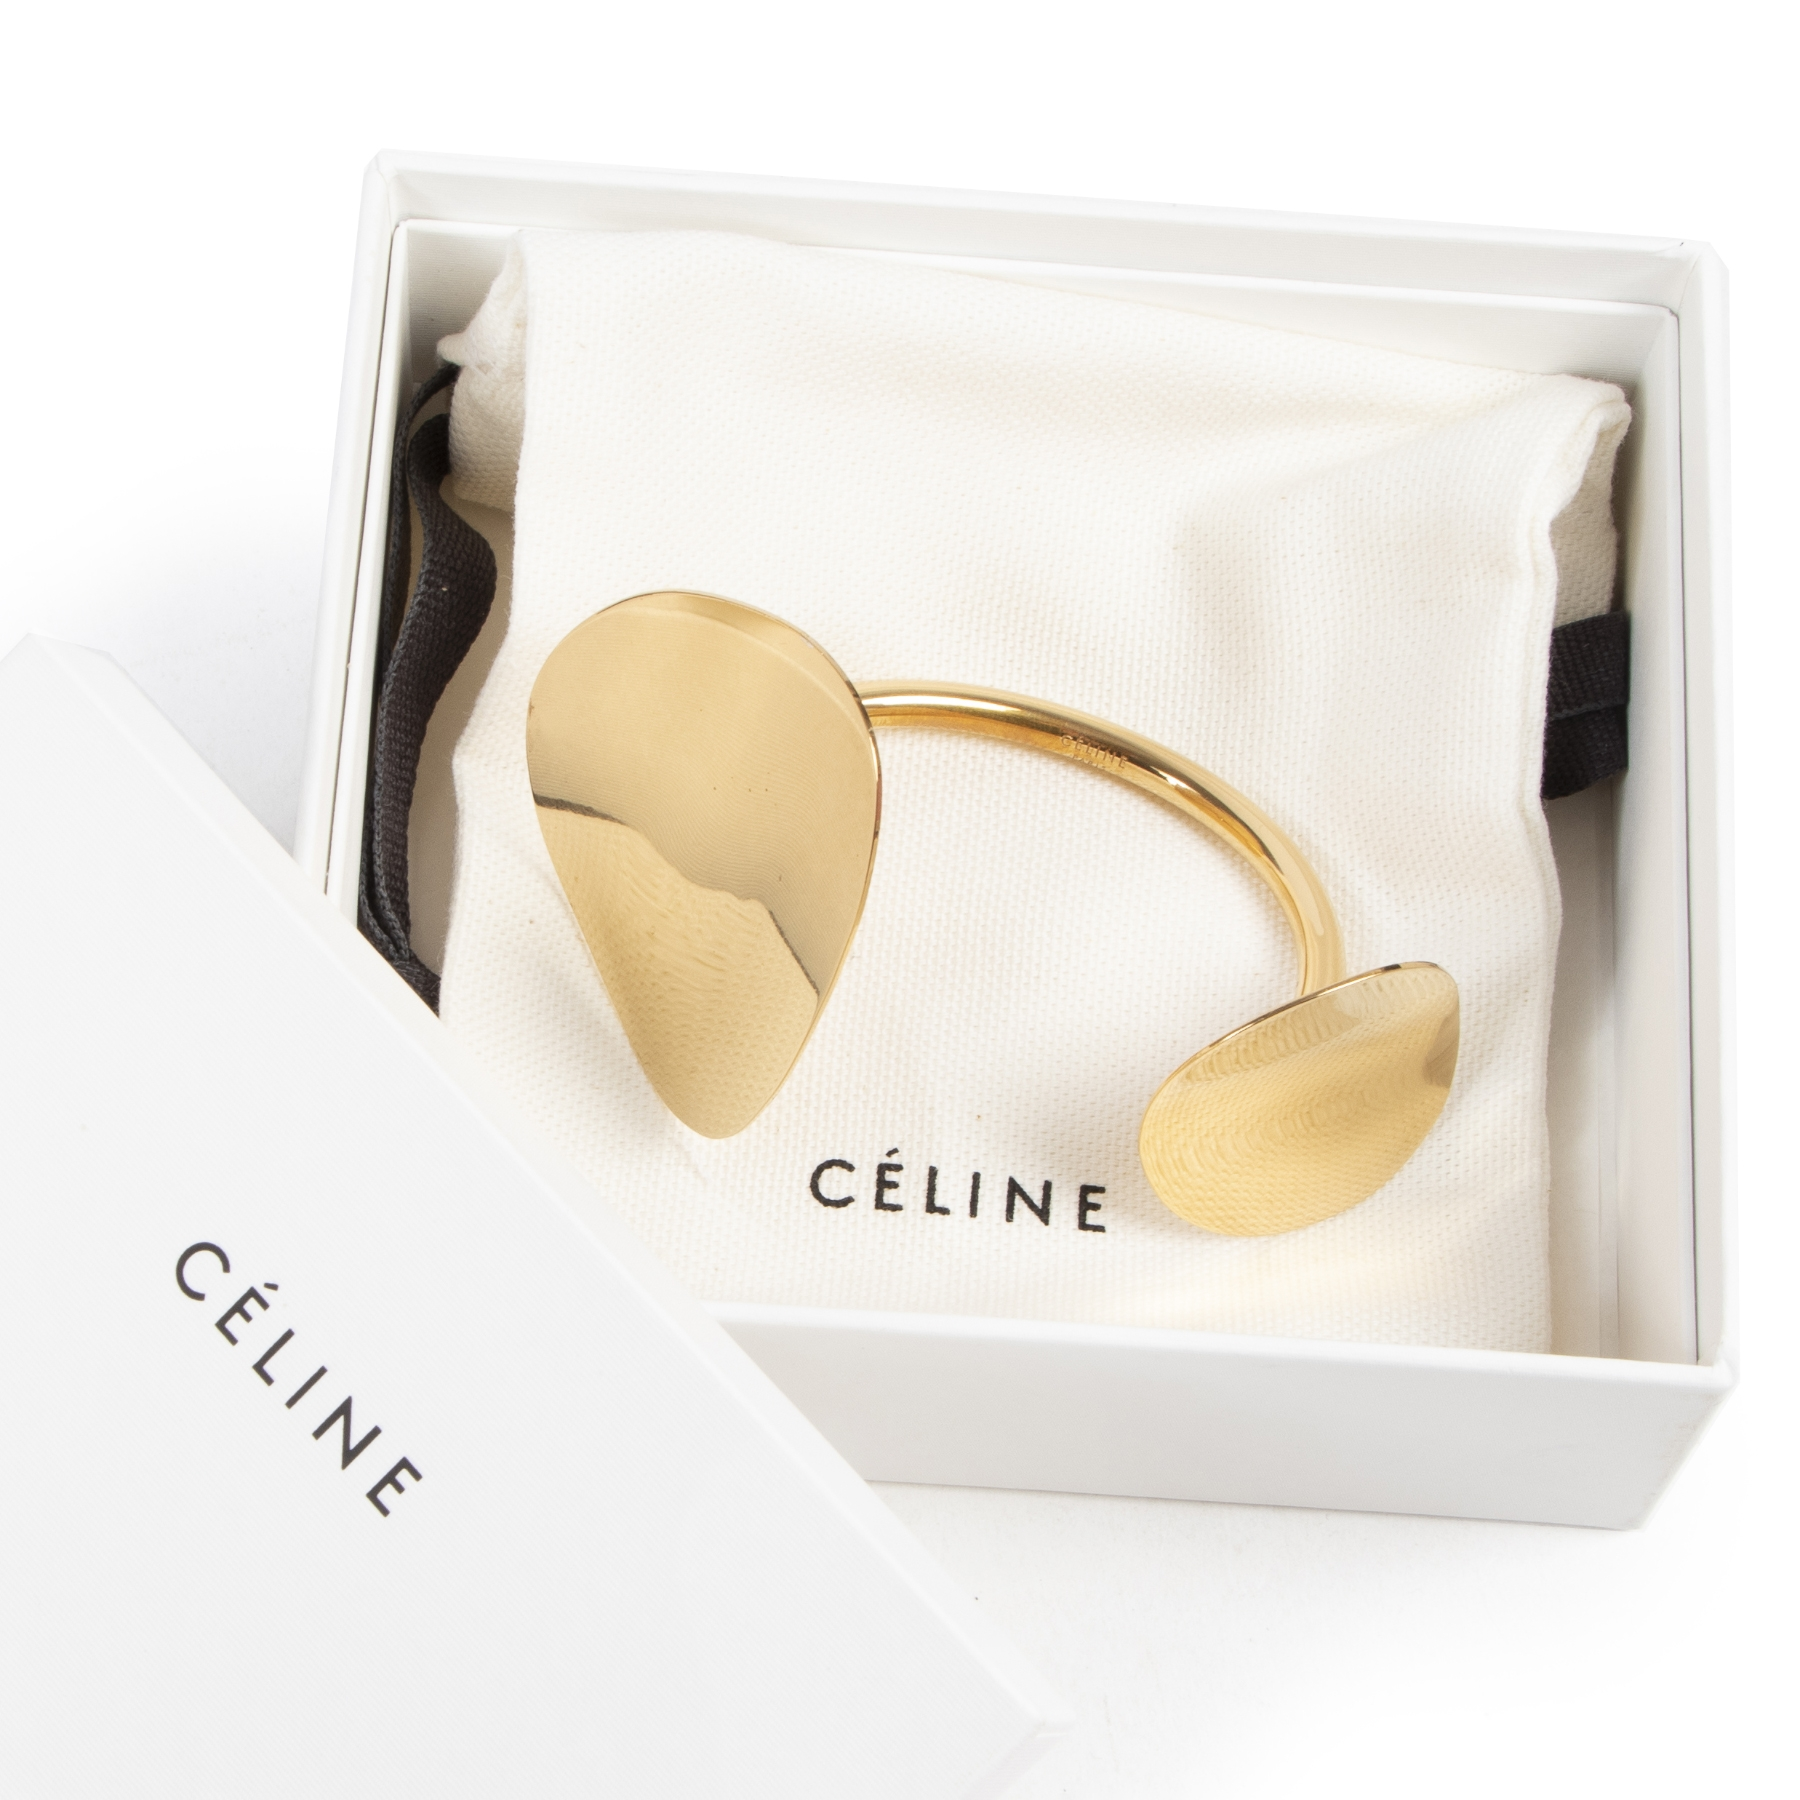 Céline Golden Bracelet. Authentieke Céline accessoires bij LabelLOV Antwerpen. Authentique seconde-main luxury en ligne webshop LabelLOV. Authentic Céline accessories at LabelLOV Antwerp.